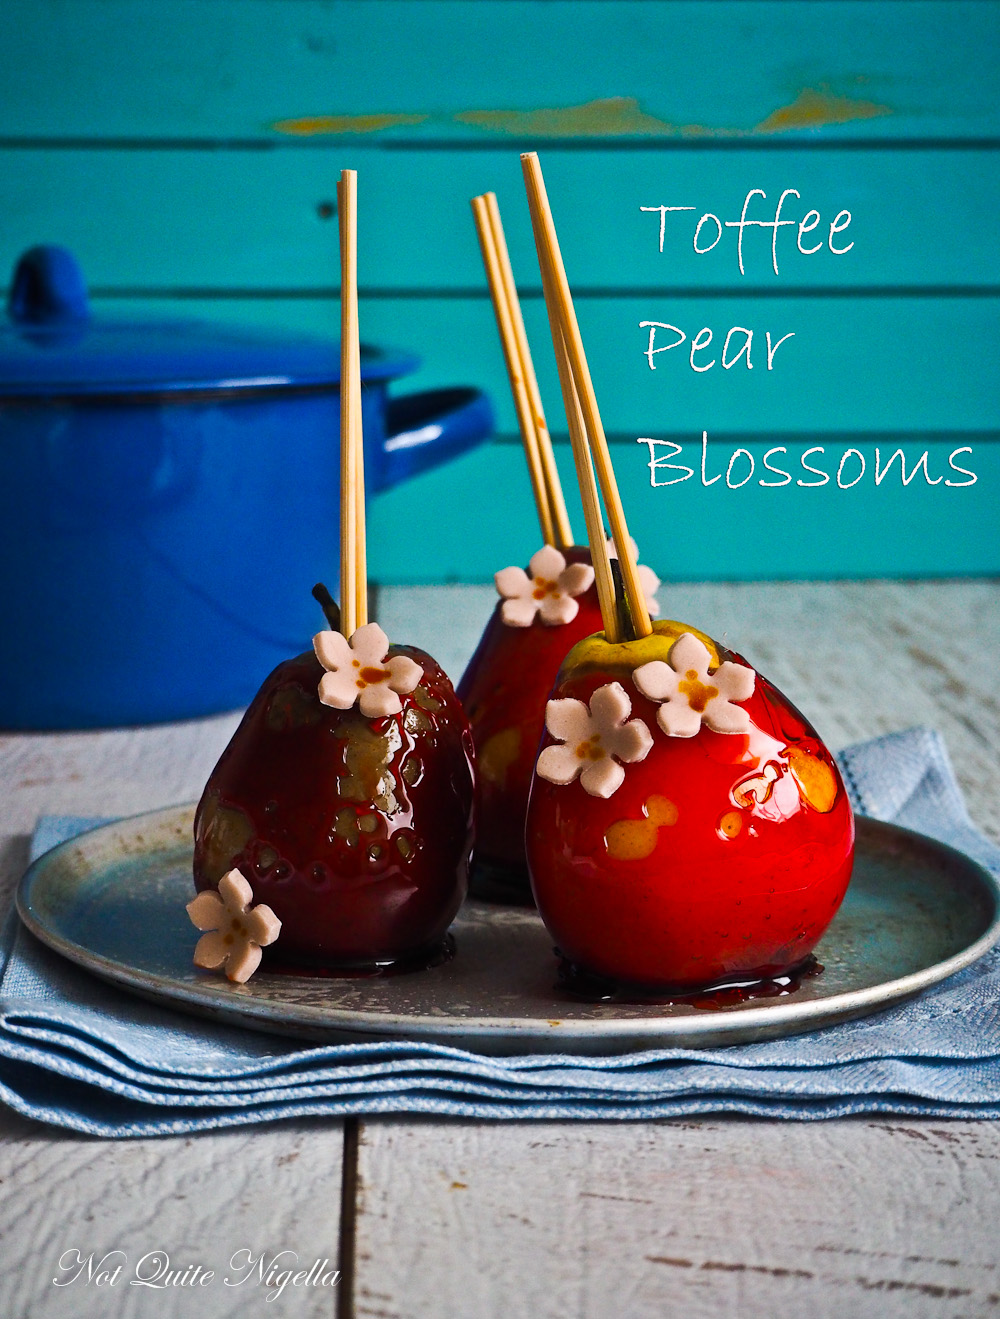 Toffee Pears